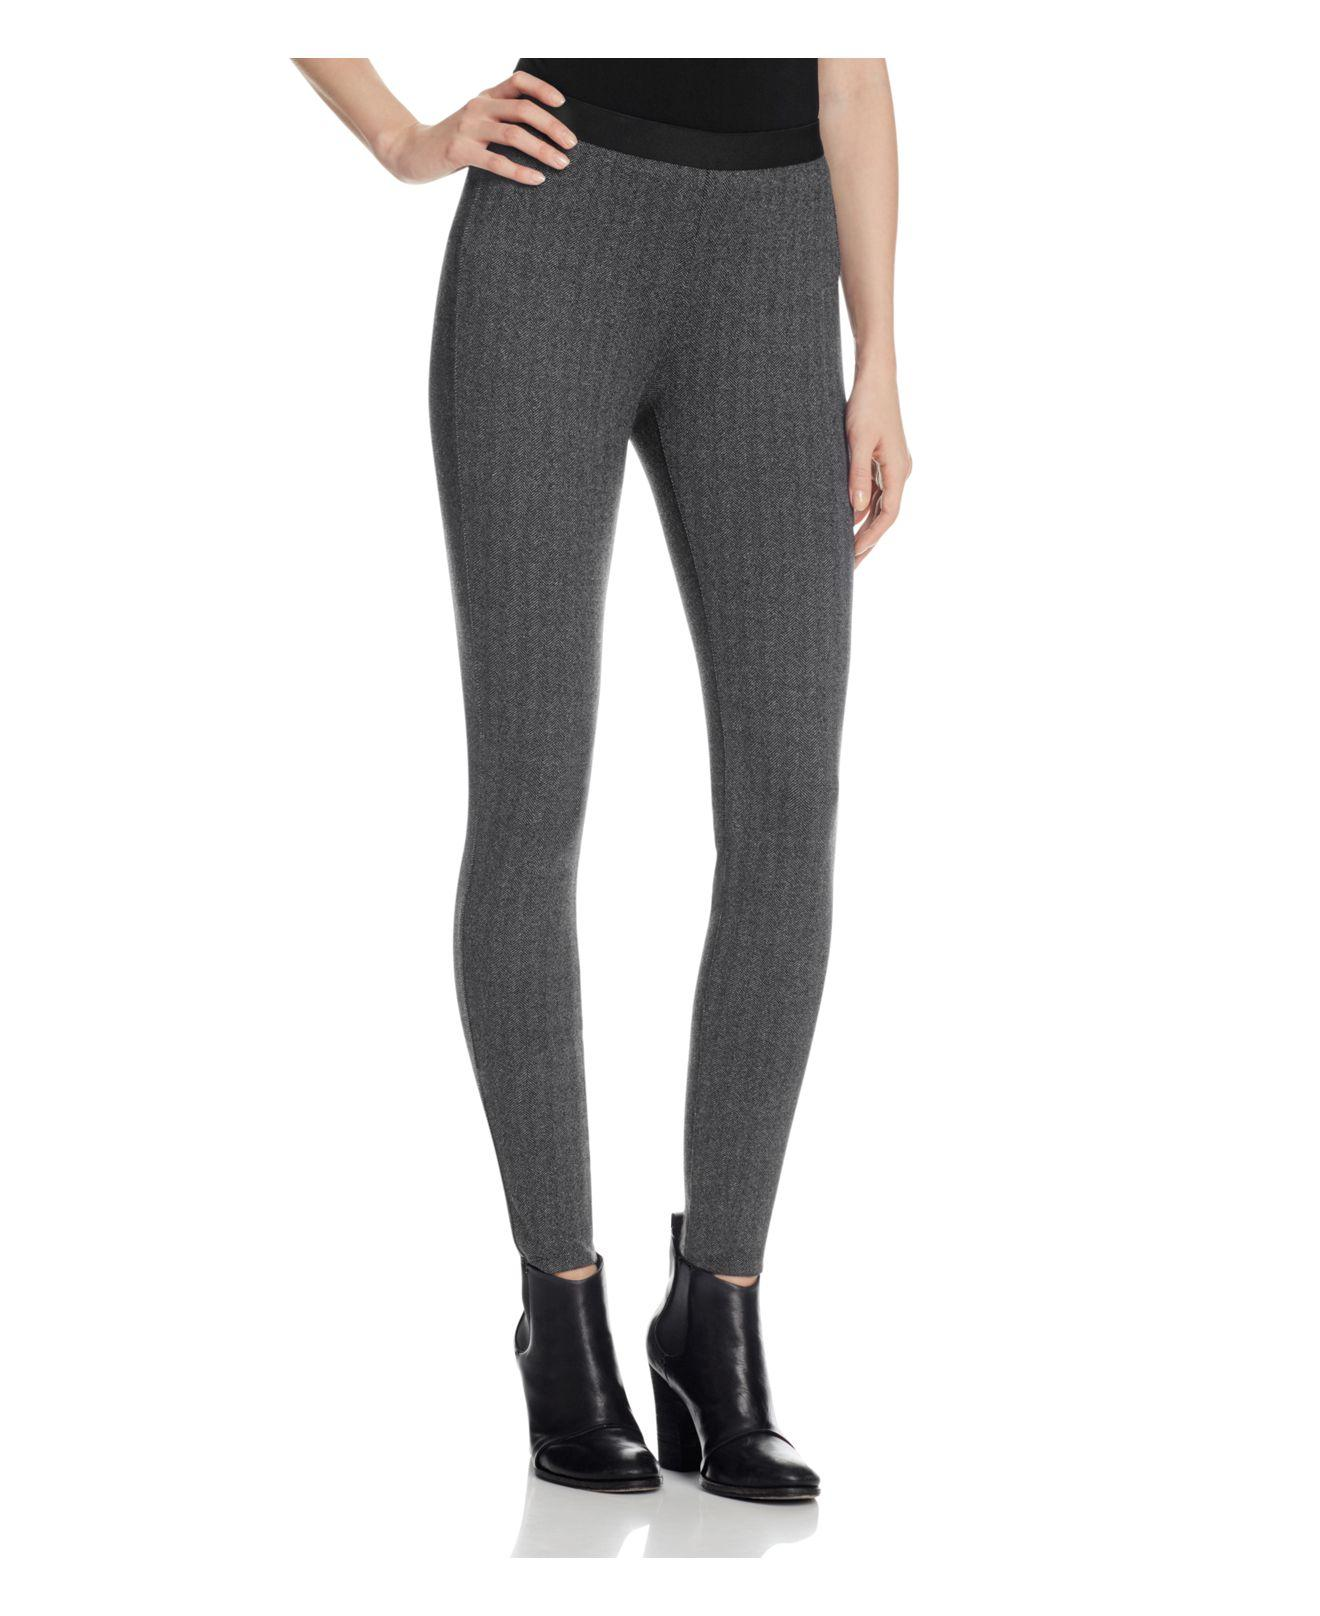 4854e4790f8 Lyst - Eileen Fisher Heathered Herringbone Leggings in Gray